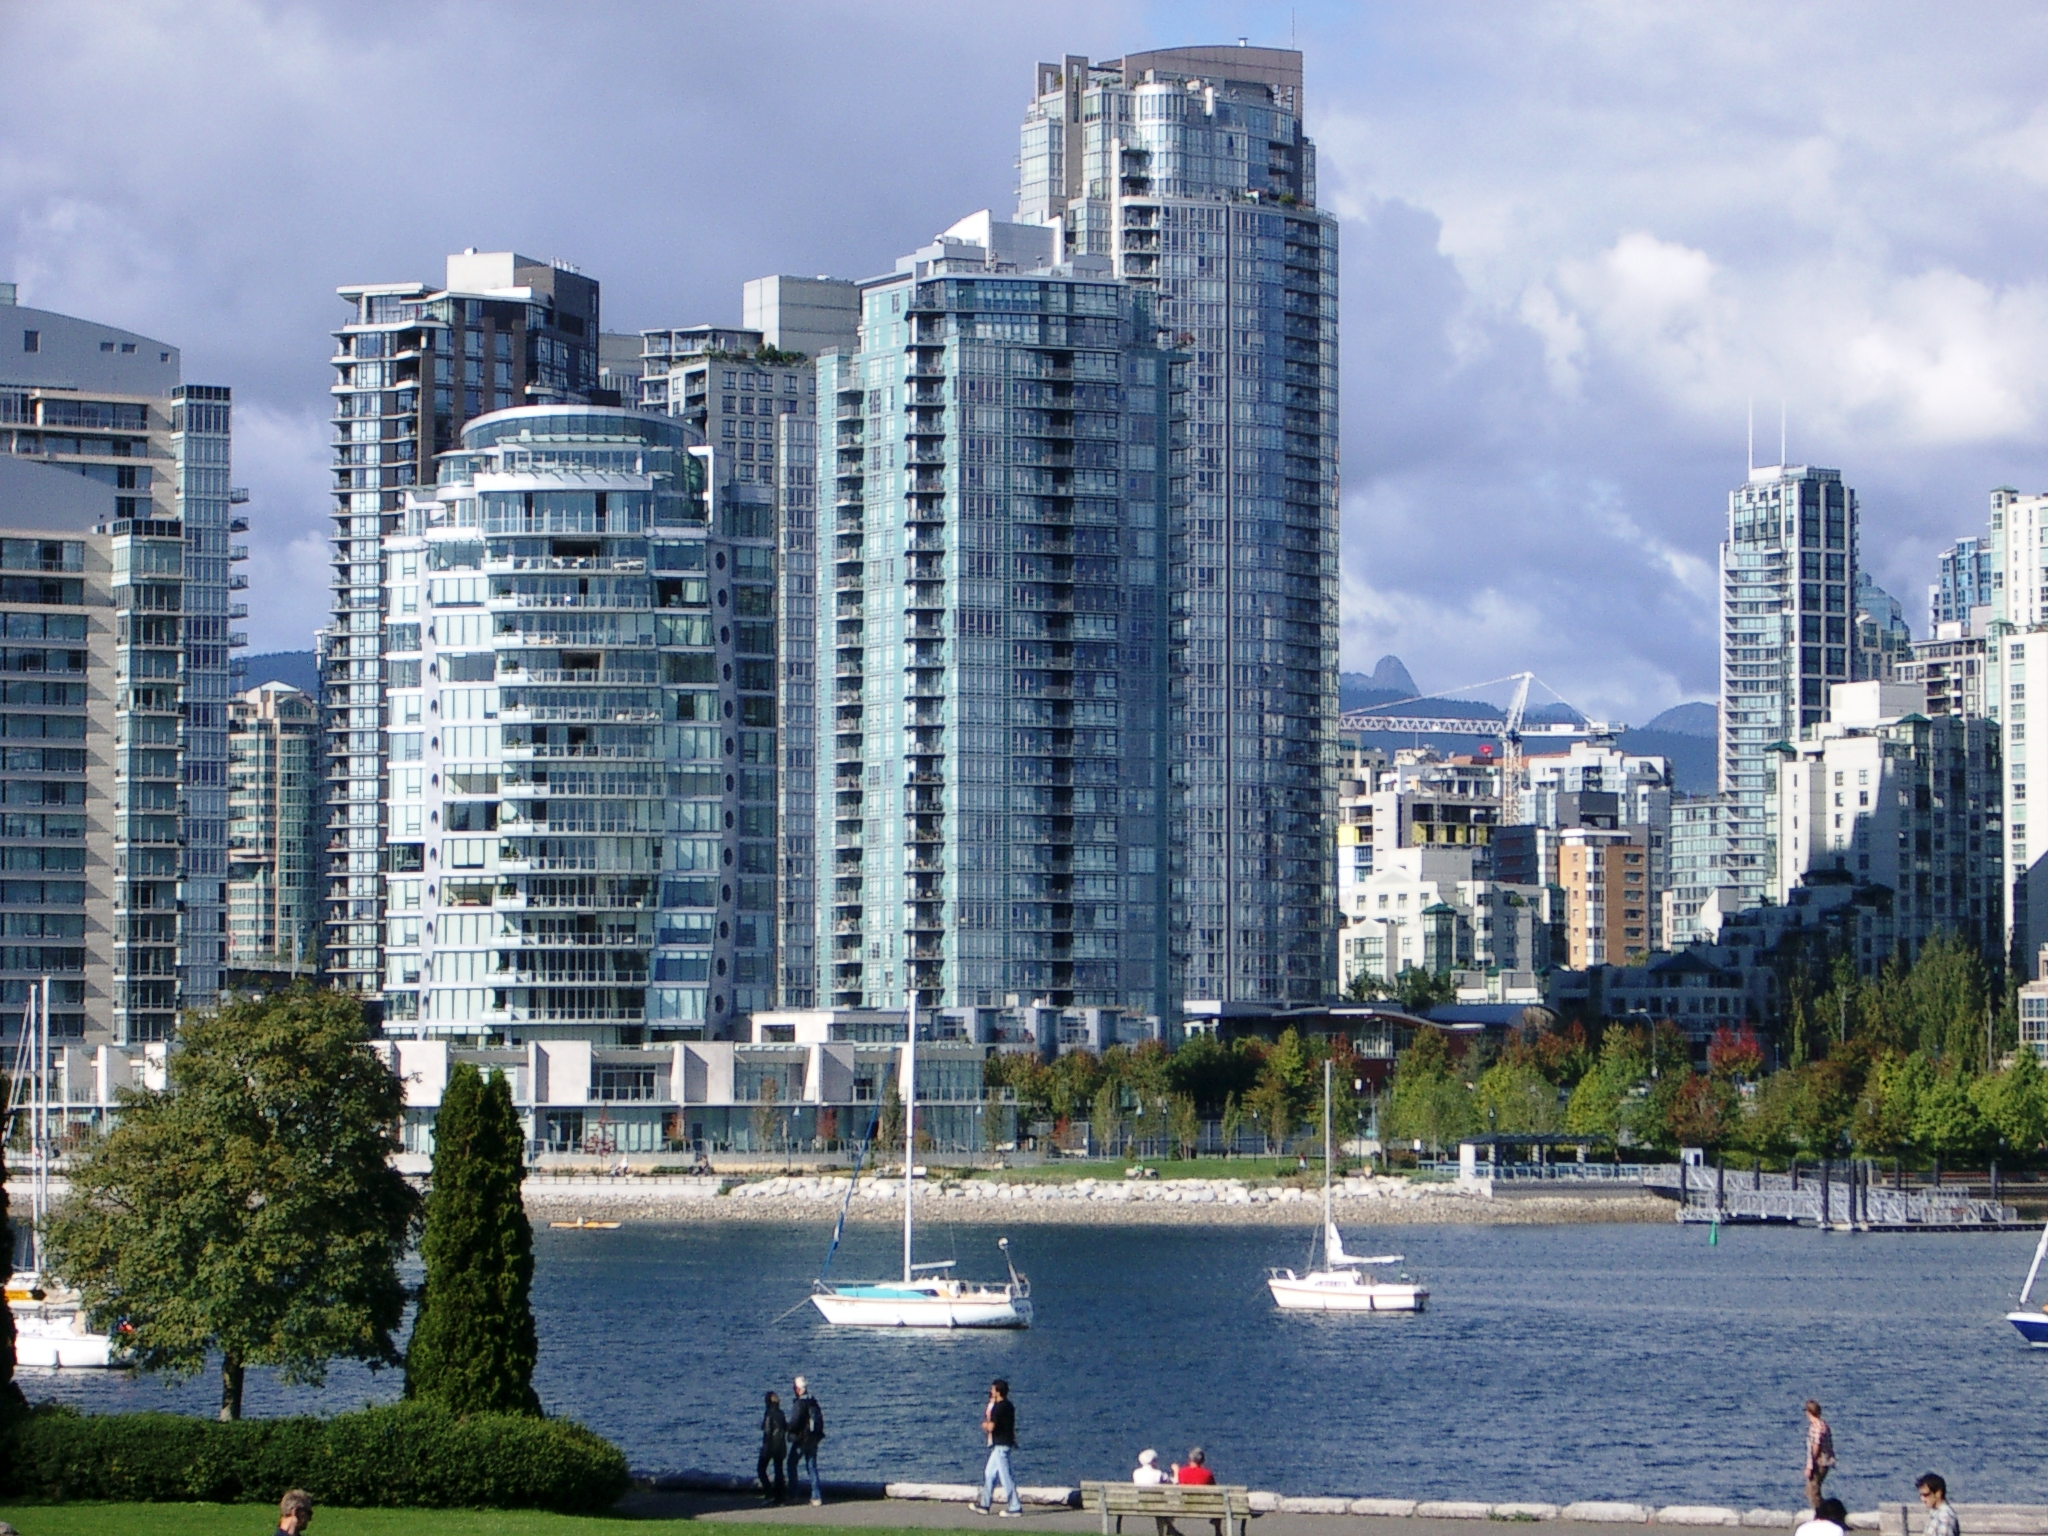 VANCOUVERITES WORRIED ABOUT LOSING RENTAL PROPERTIES TO AIRBNB